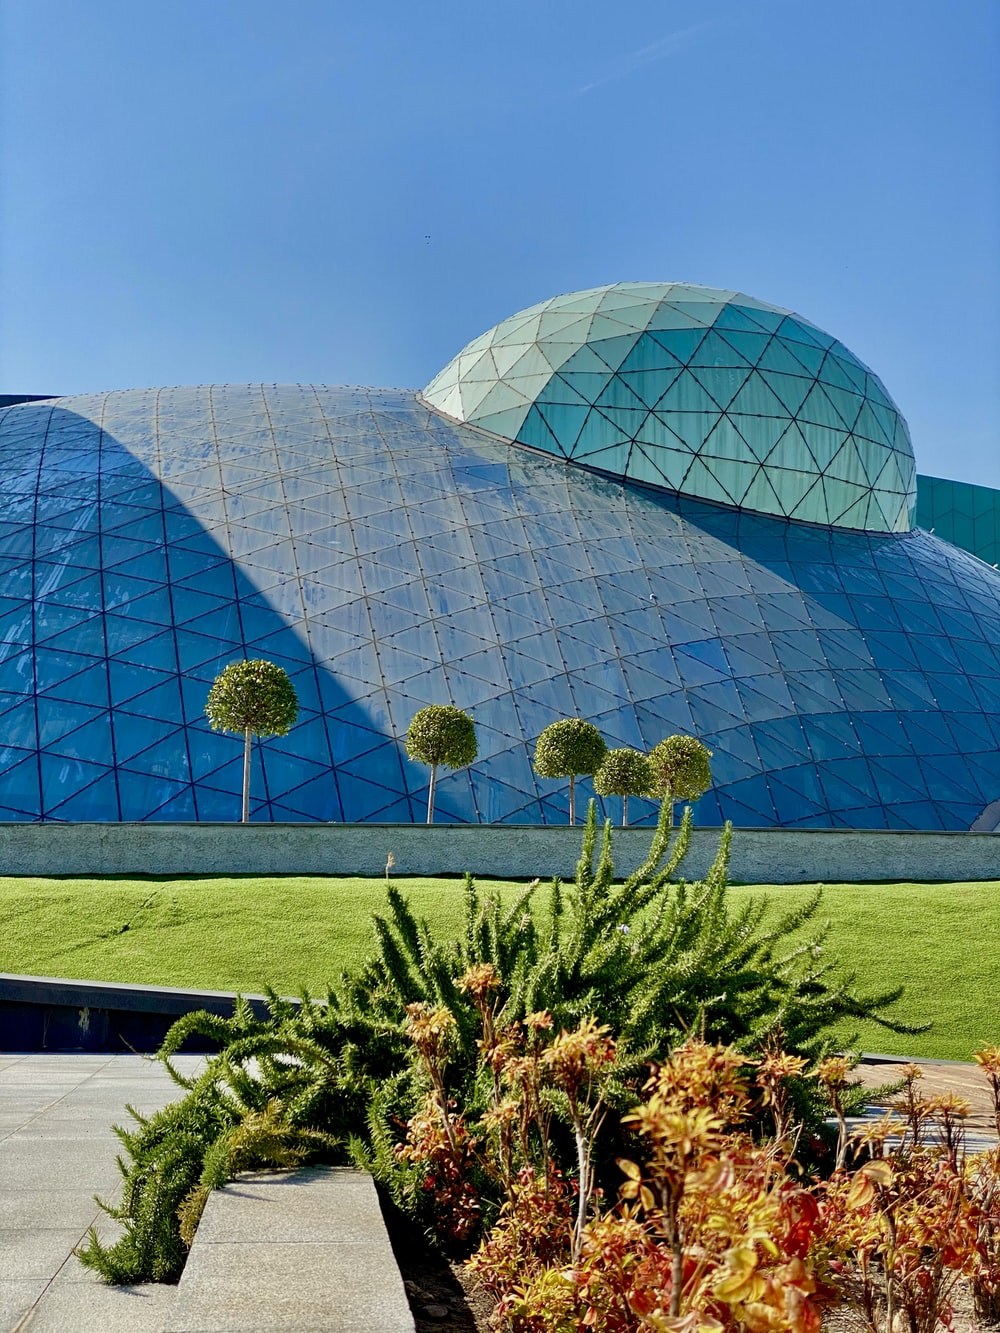 blue glass dome building near green grass field during daytime